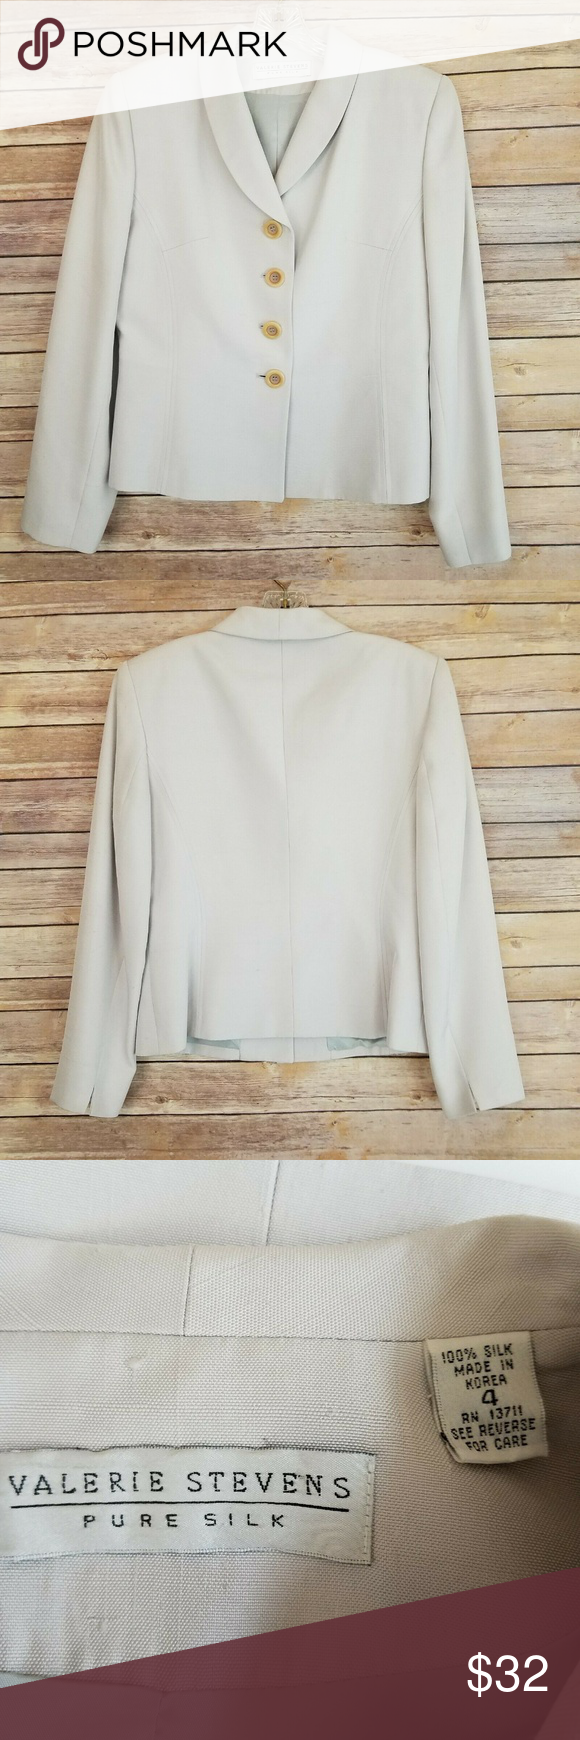 Clothing, Shoes & Accessories Gentle Women's Blazer Long Sleeve Size 4p Suits & Suit Separates